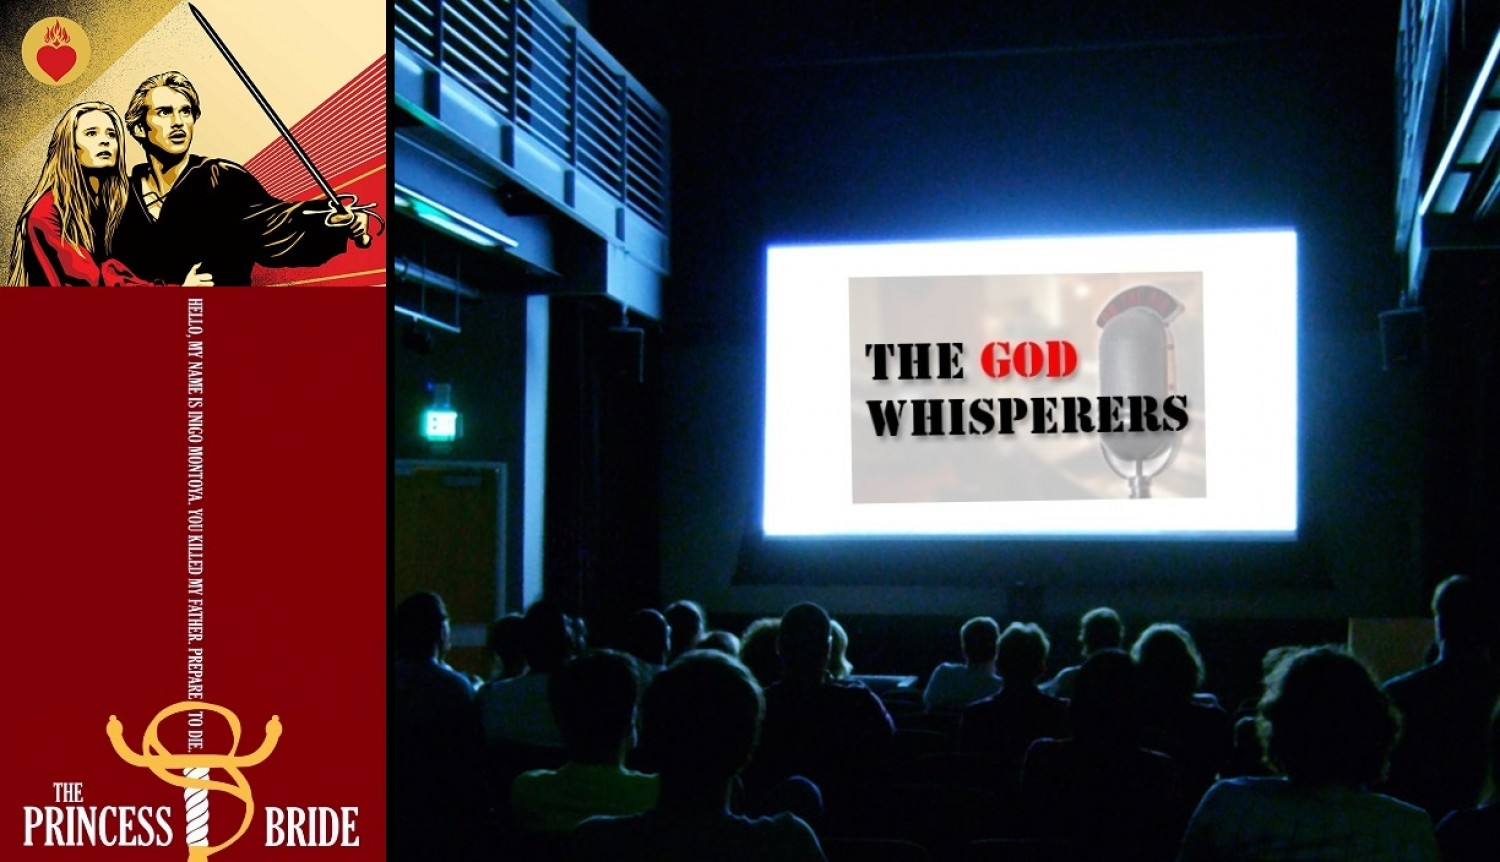 Pr. Ted Giese On The God Whisperers With Donofrio & Cwirla - Princess Bride Edition